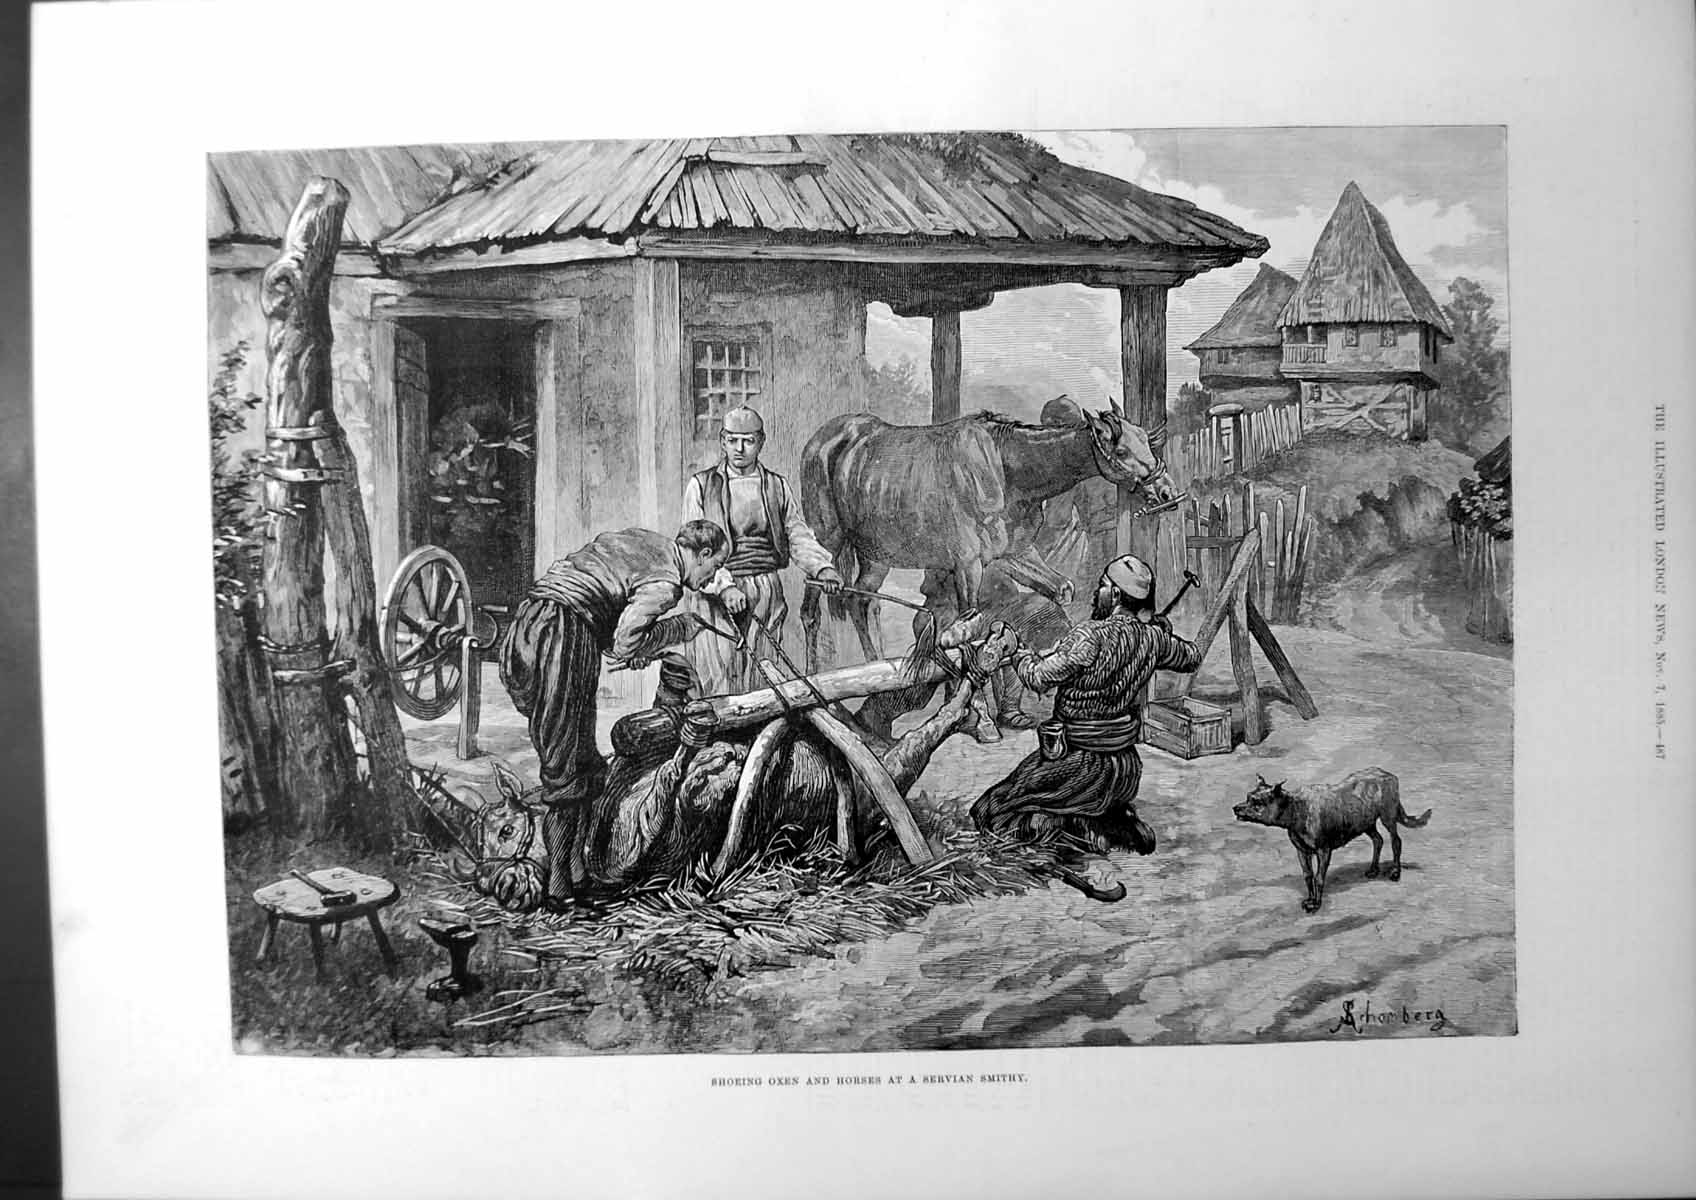 [Print Shoeing Oxen And Horses At A Servian Smithy Farm-House Dog 1885 157J669 Old Original]